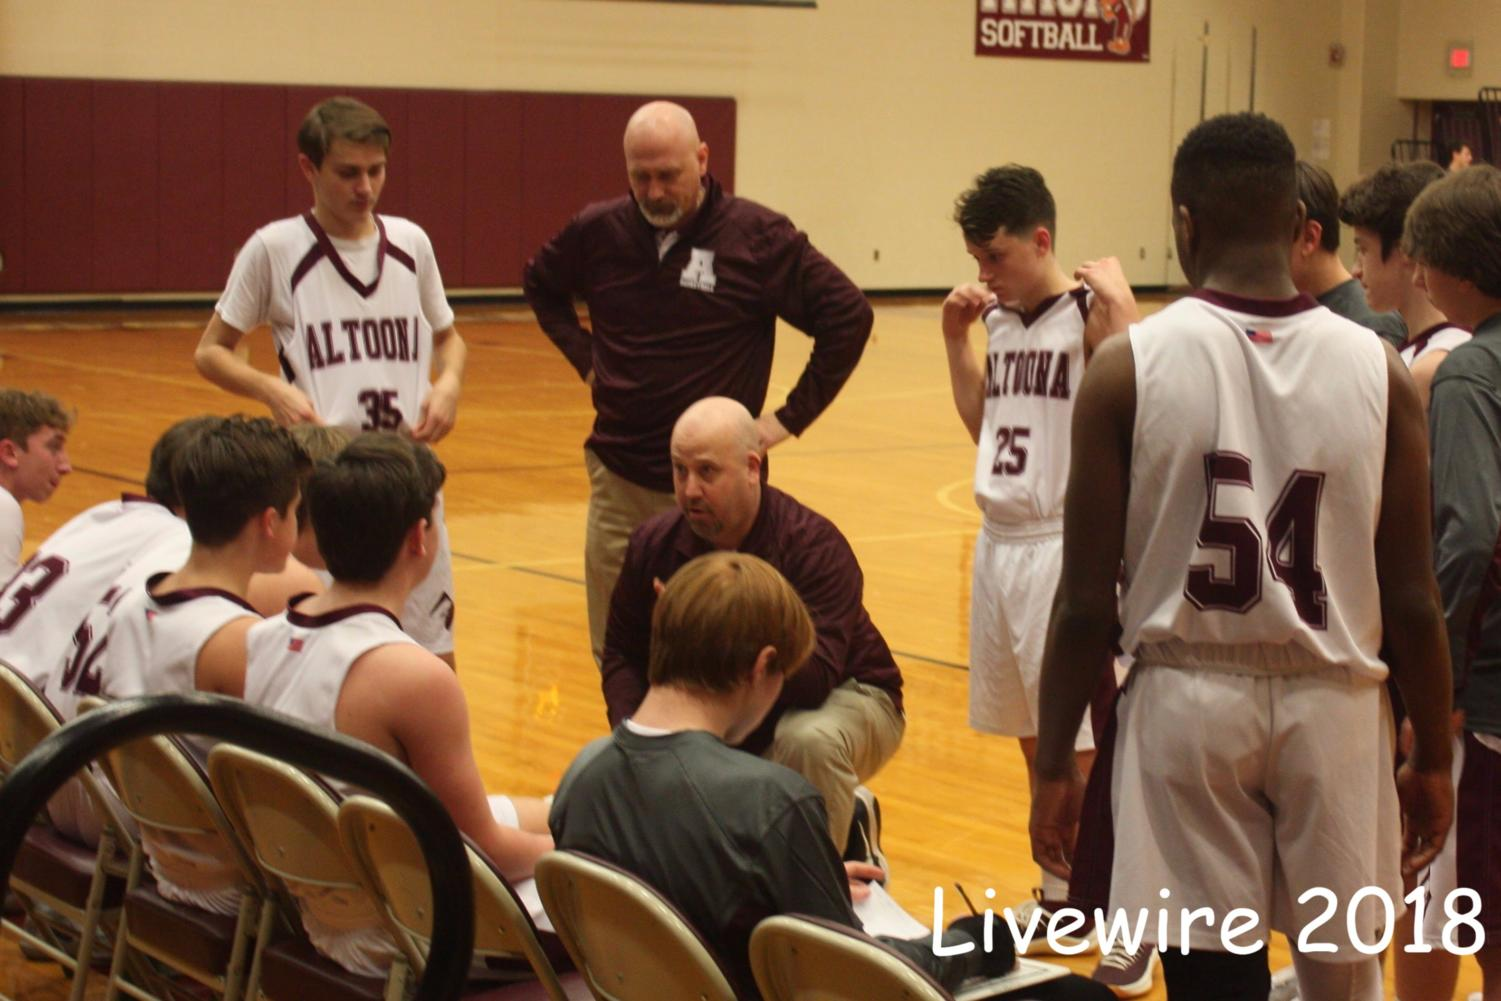 You got this!  Coach Chuck Sayler coaches the team during their game. Sayler then gave another pep talk during half time.